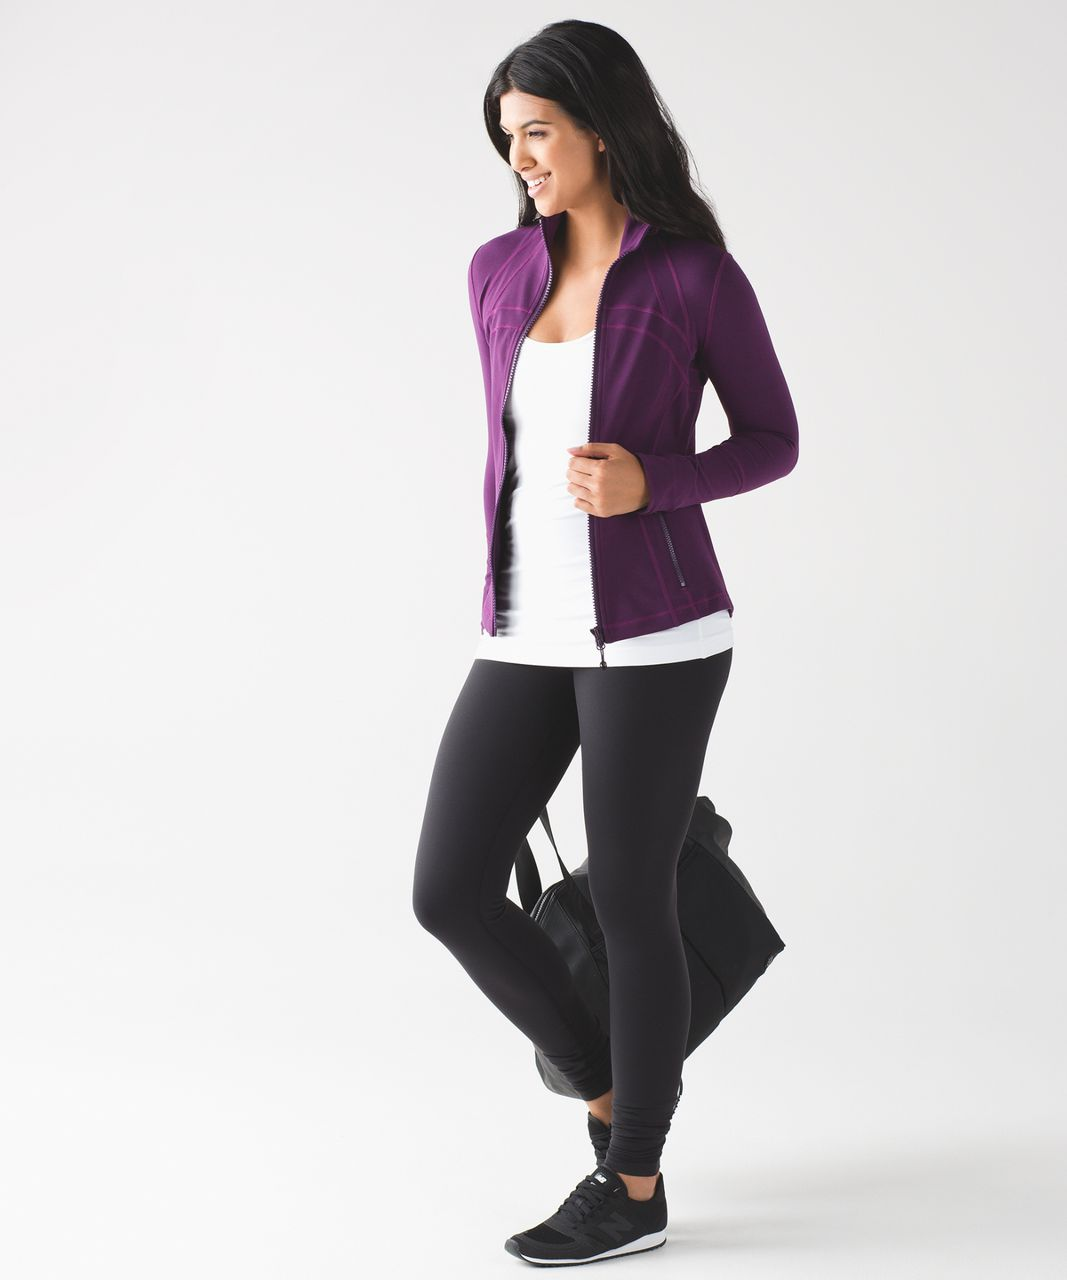 Lululemon Define Jacket - Darkest Magenta